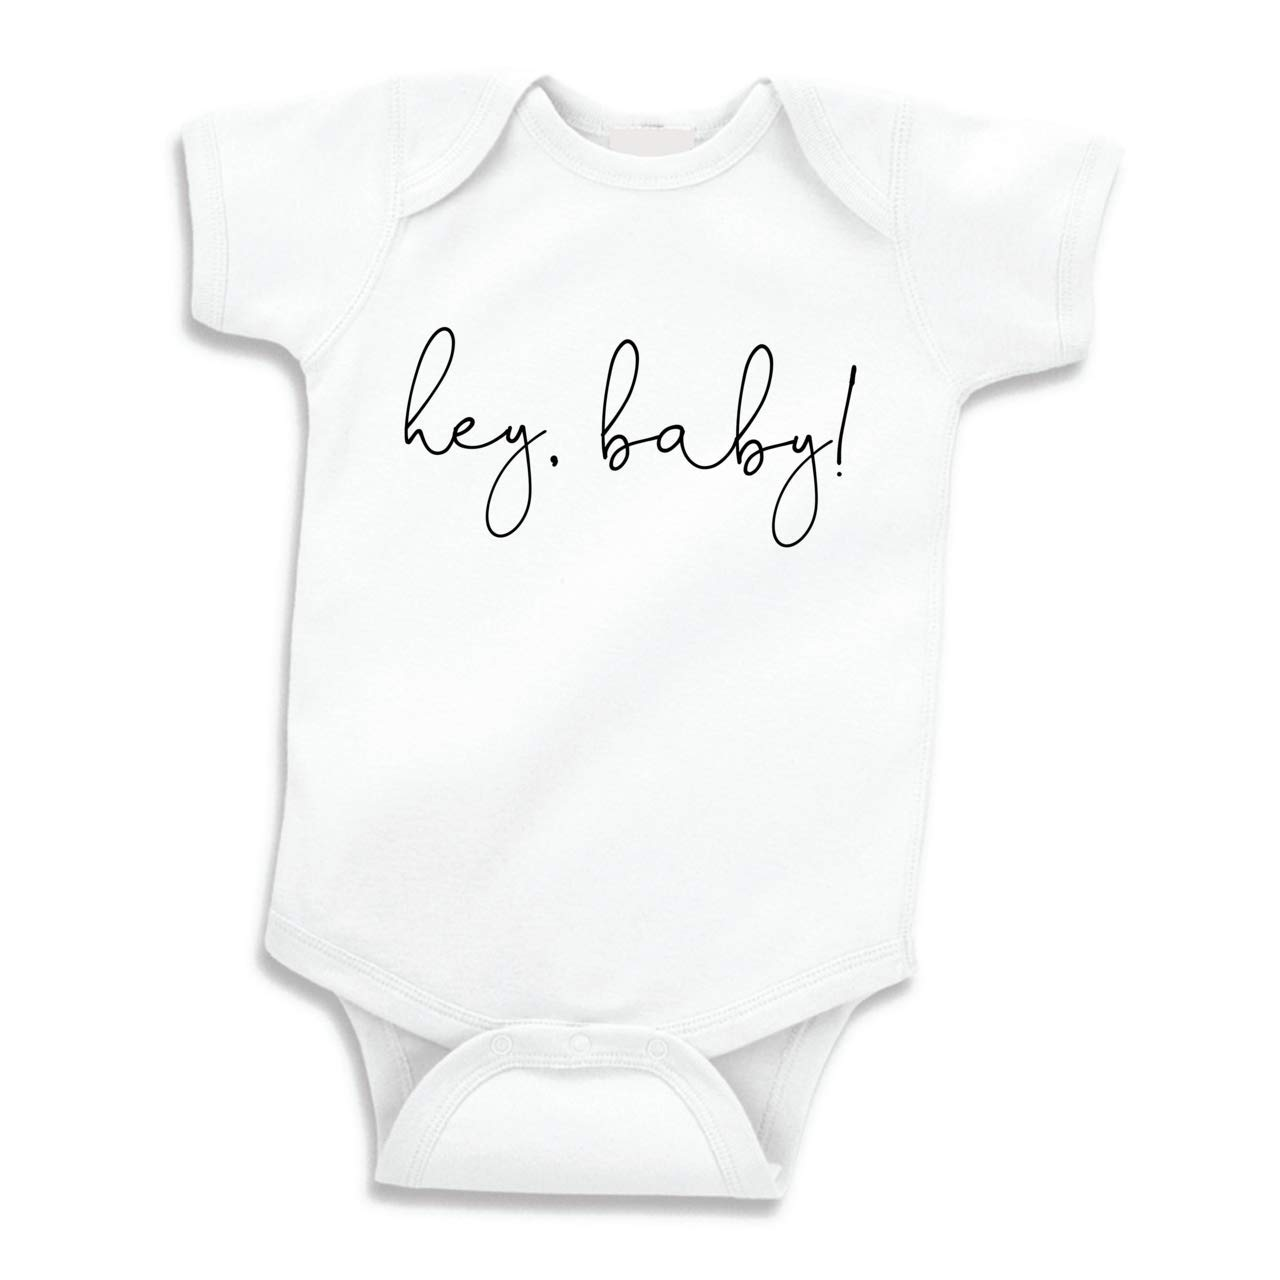 Baby Announcement Gifts for Grandparents, Hey Baby